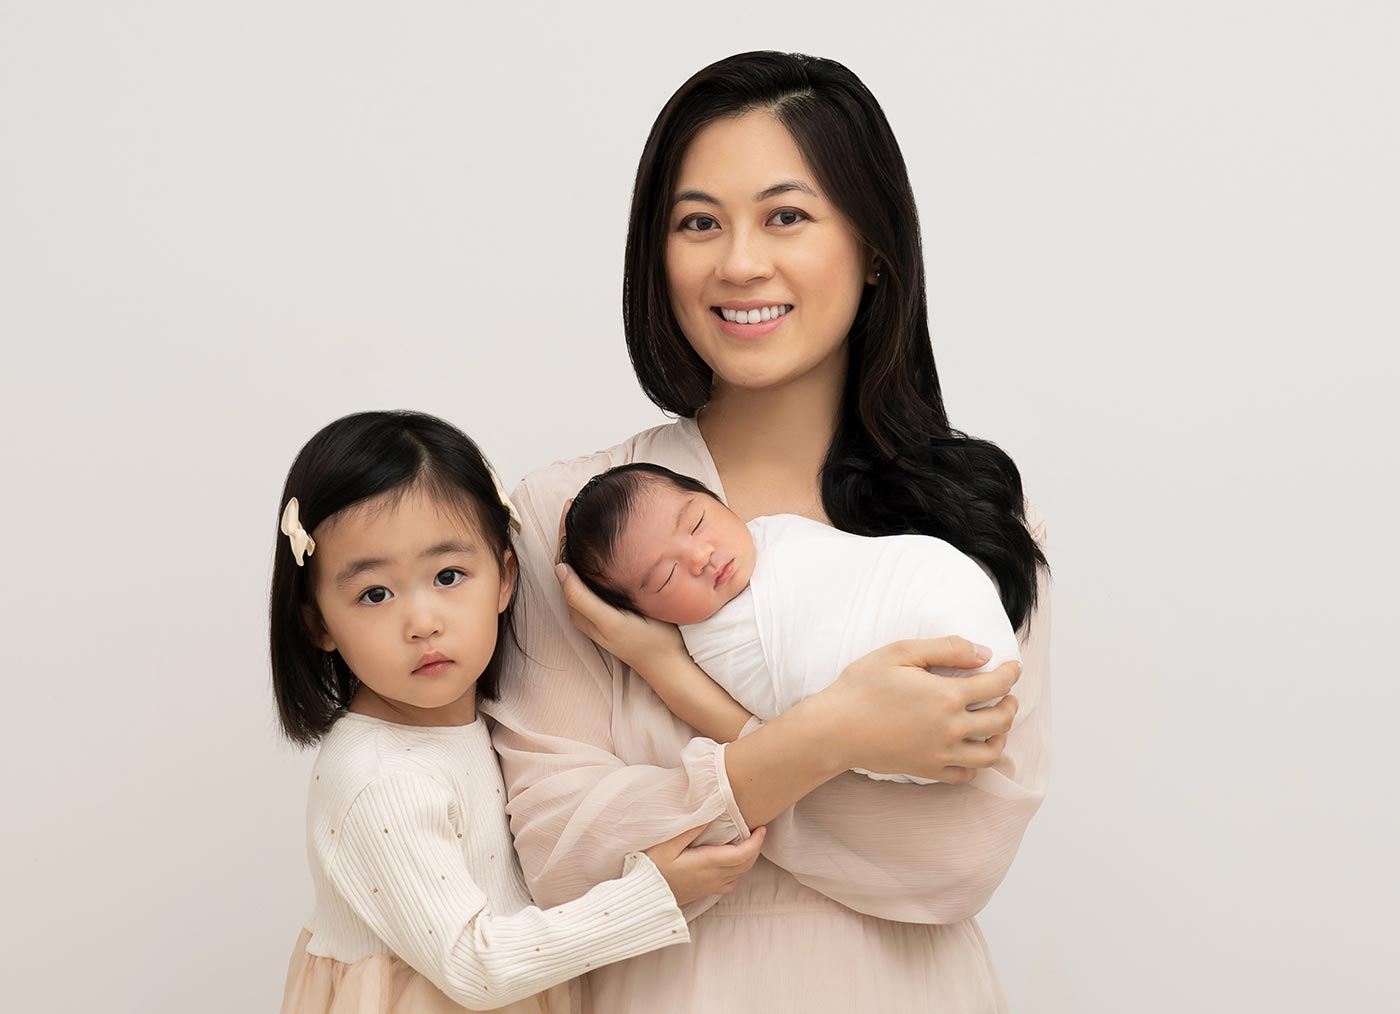 mother cradling newborn with big sister in neutral tones